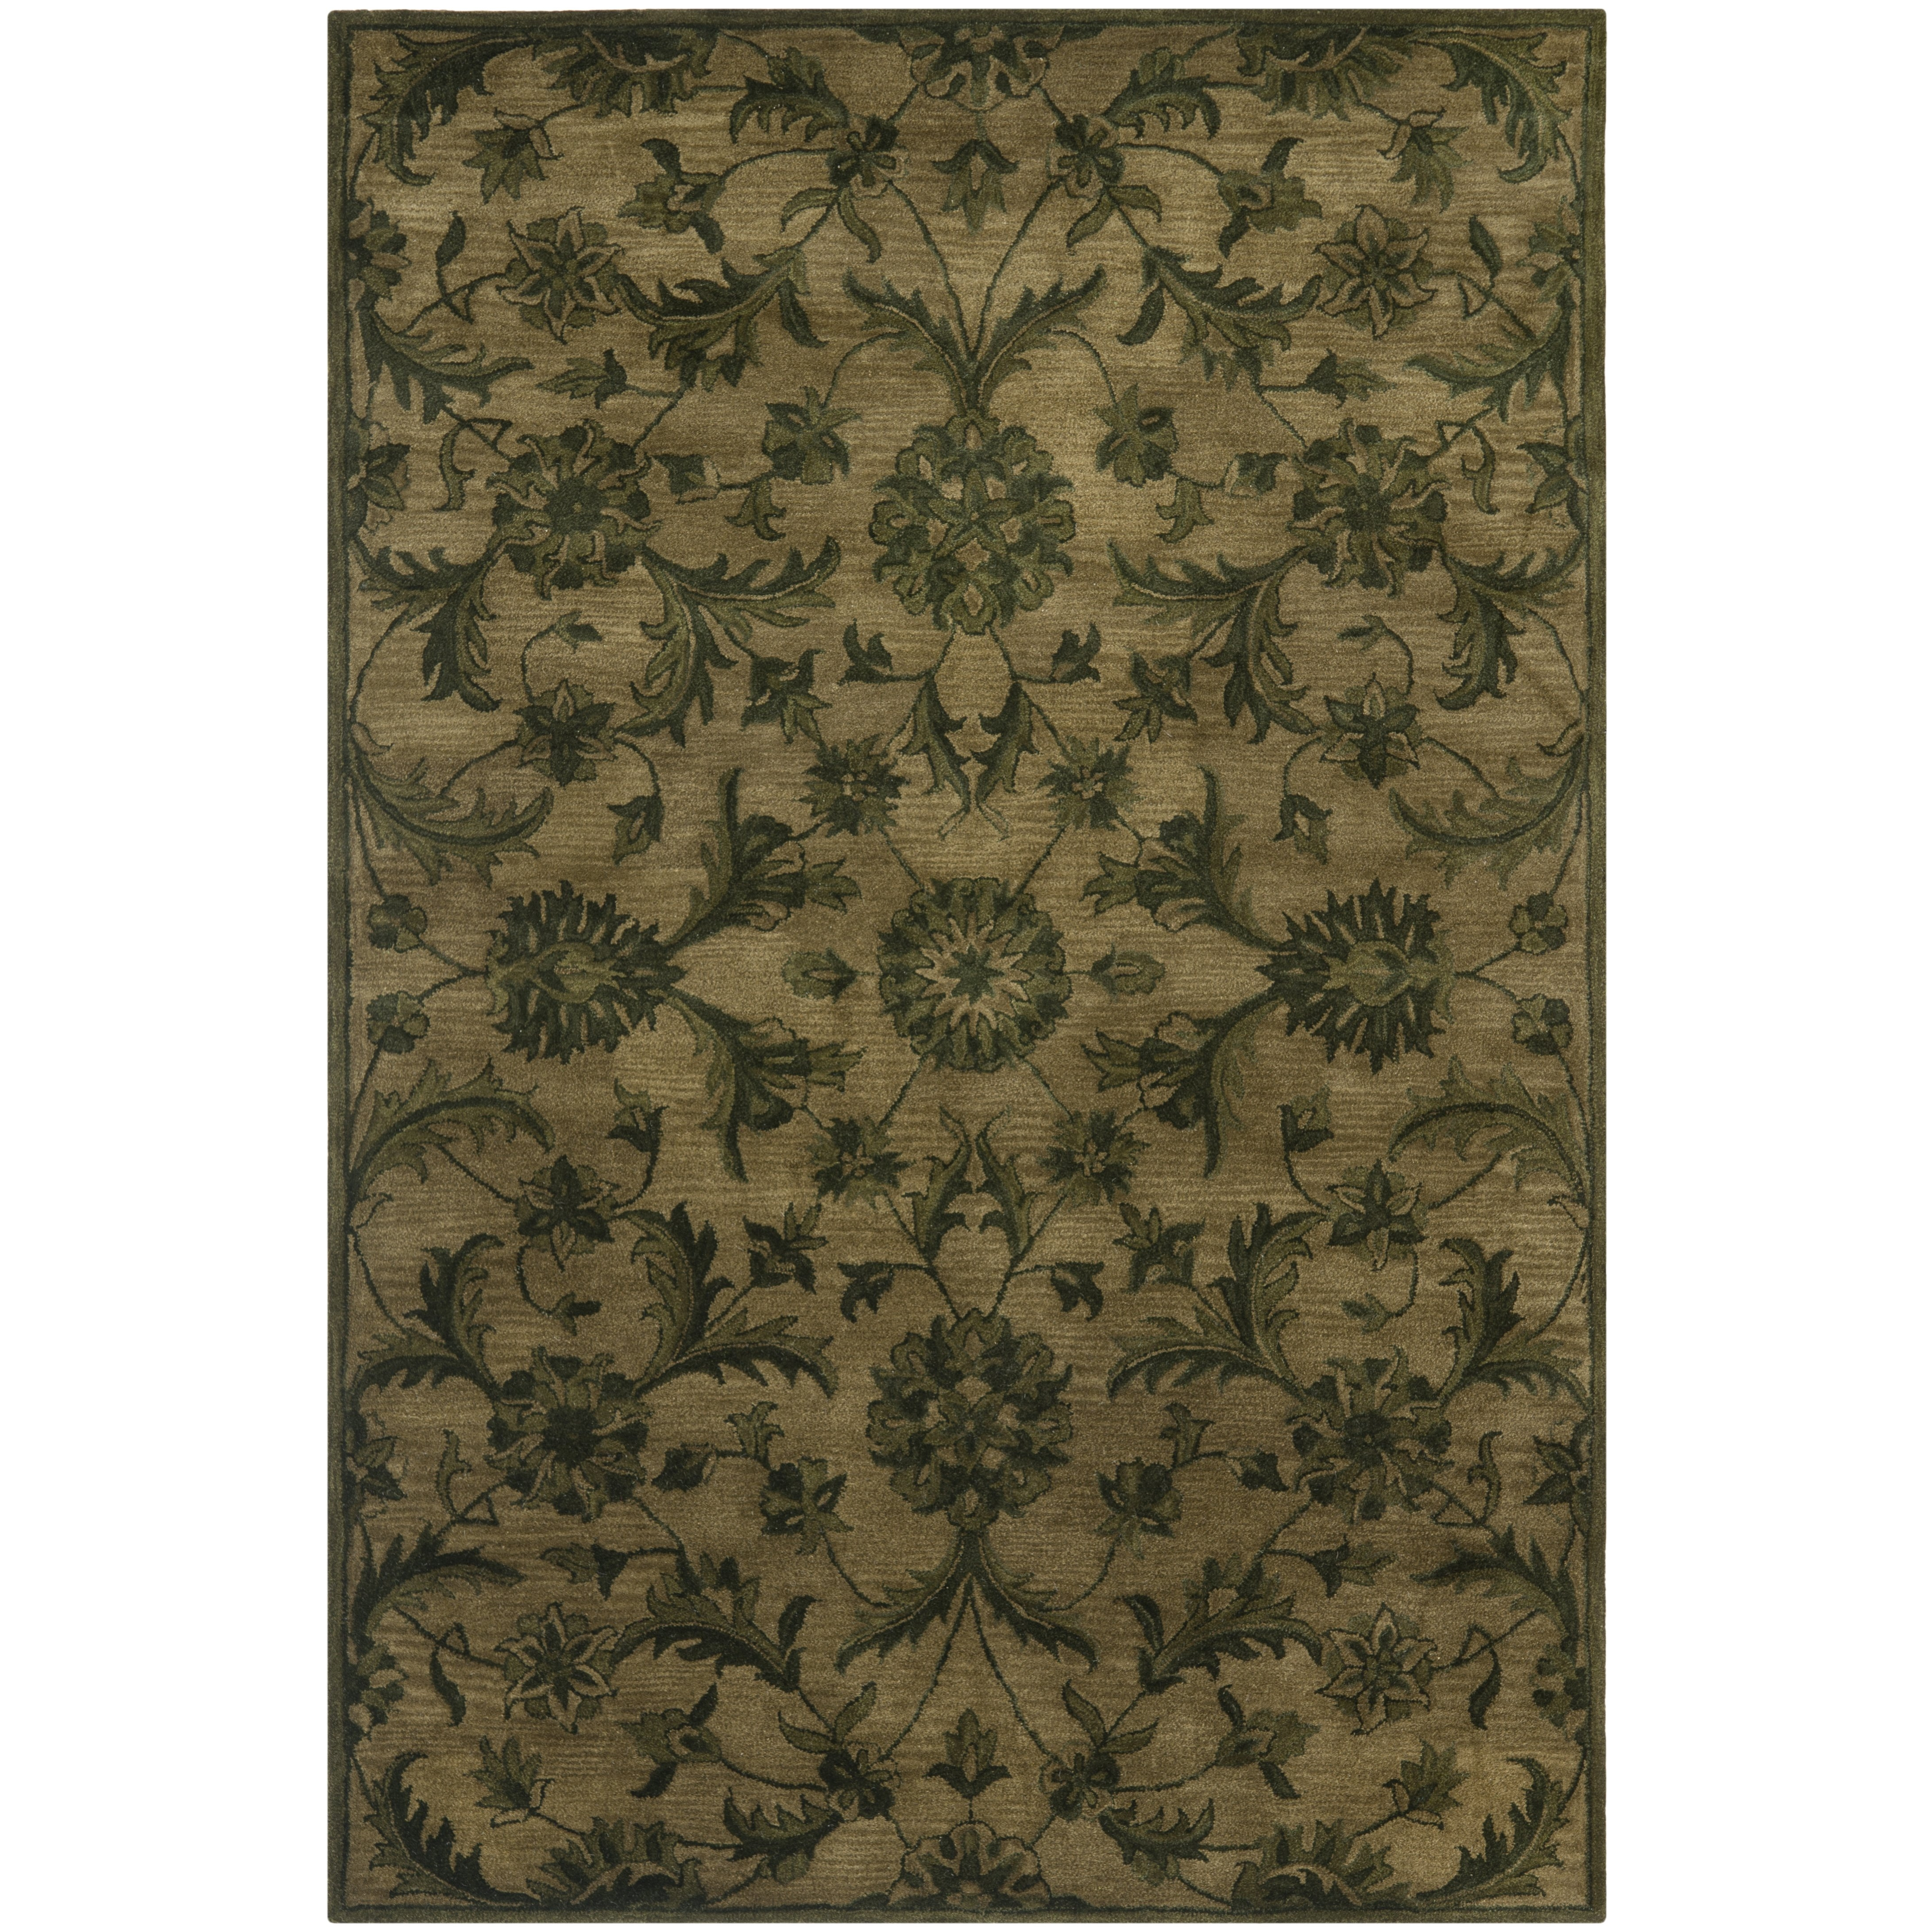 Olive Green Area Rugs Roselawnlutheran Within Olive Green Rugs (Image 8 of 15)